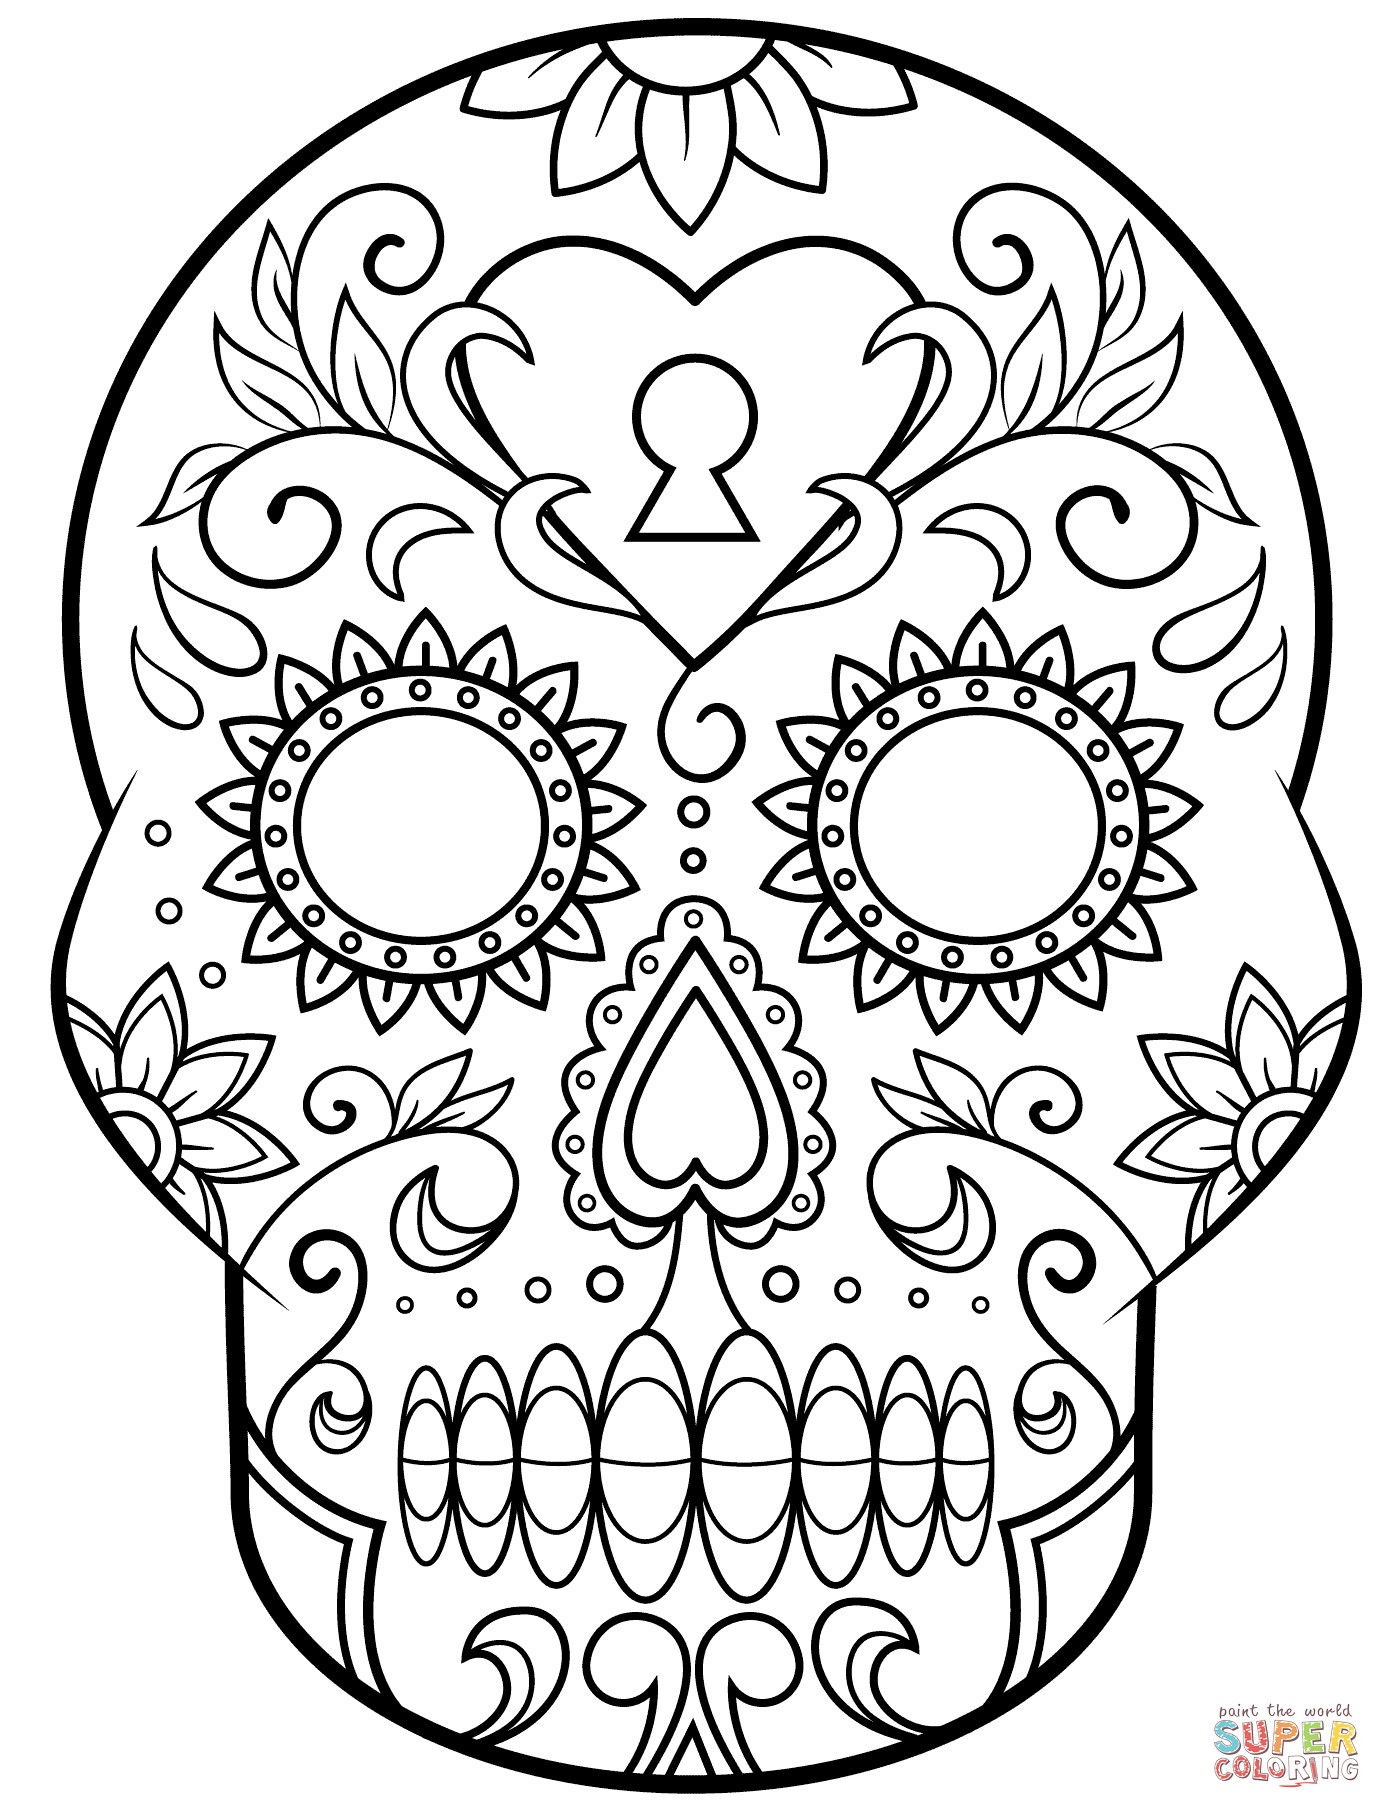 Sugar Skull Drawing Template Day Of the Dead Sugar Skull Coloring Page